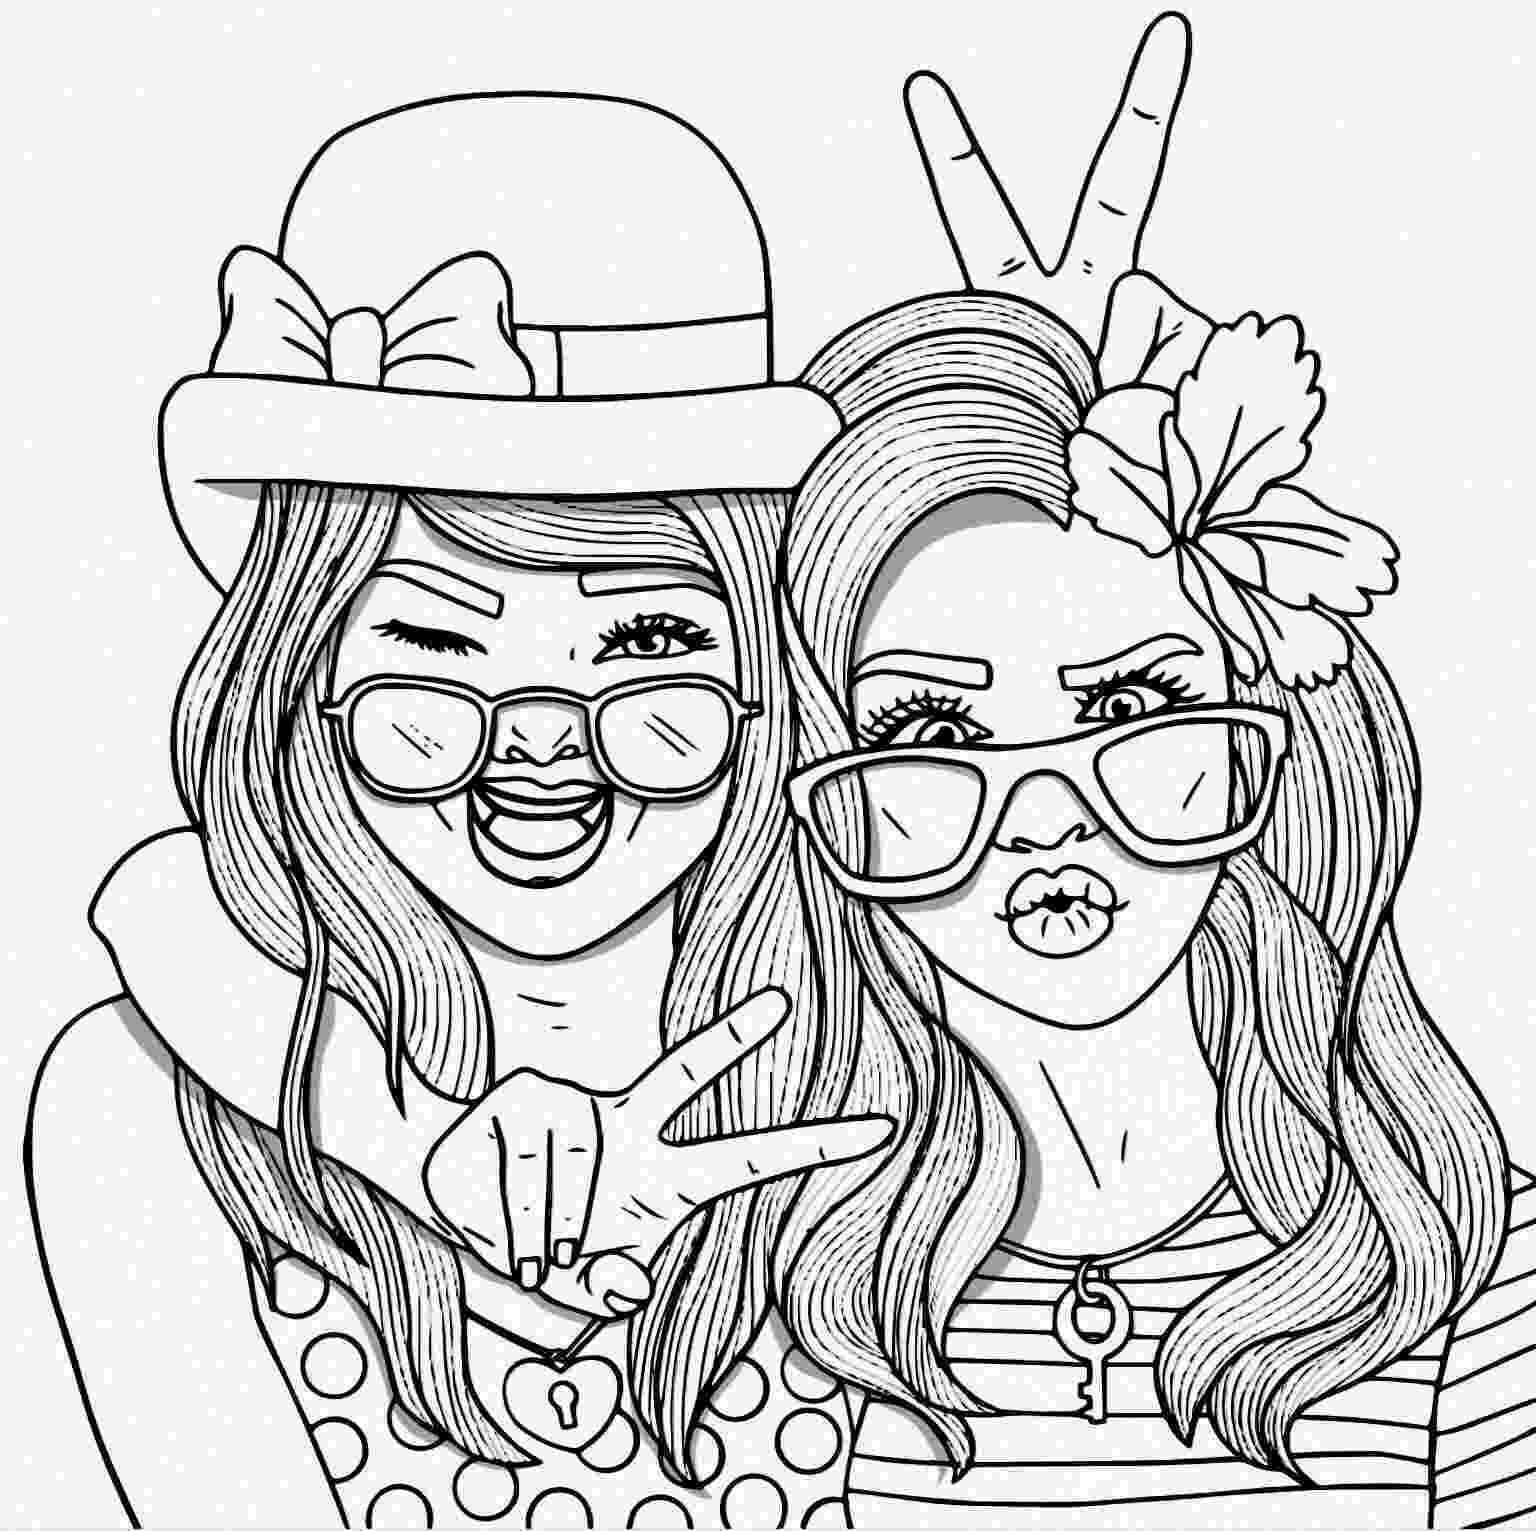 person coloring page people coloring pages getcoloringpagescom coloring person page